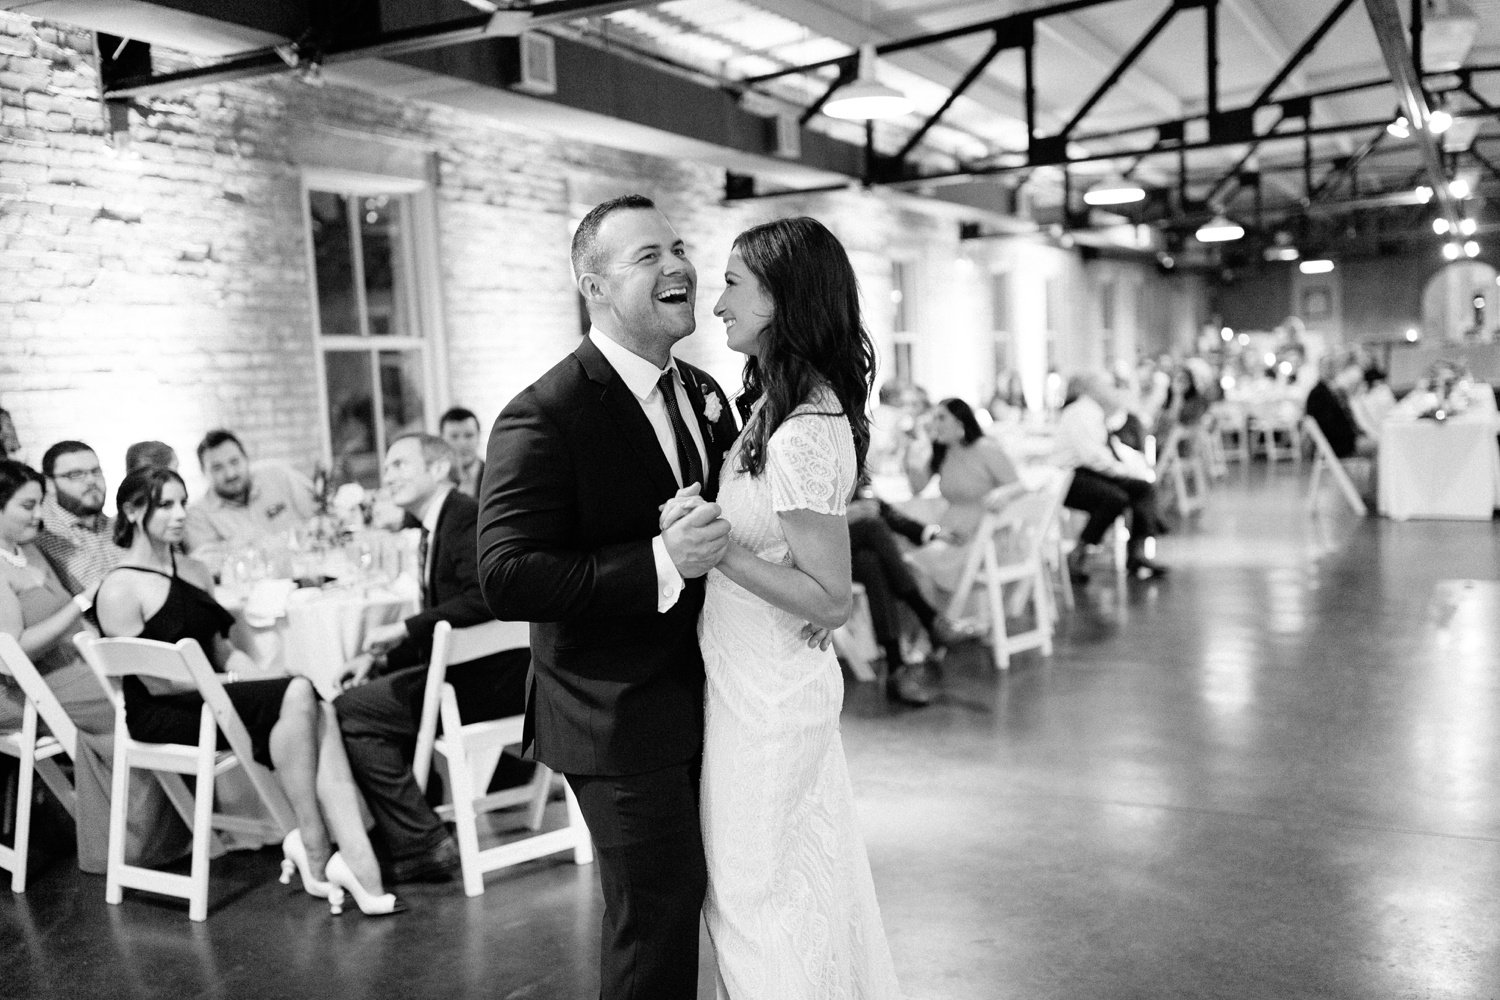 Kadee + Tyler | a raw, emotional wedding at the Filter Building on White Rock Lake in Dallas, TX by North Texas Wedding Photographer, Rachel Meagan Photography 196